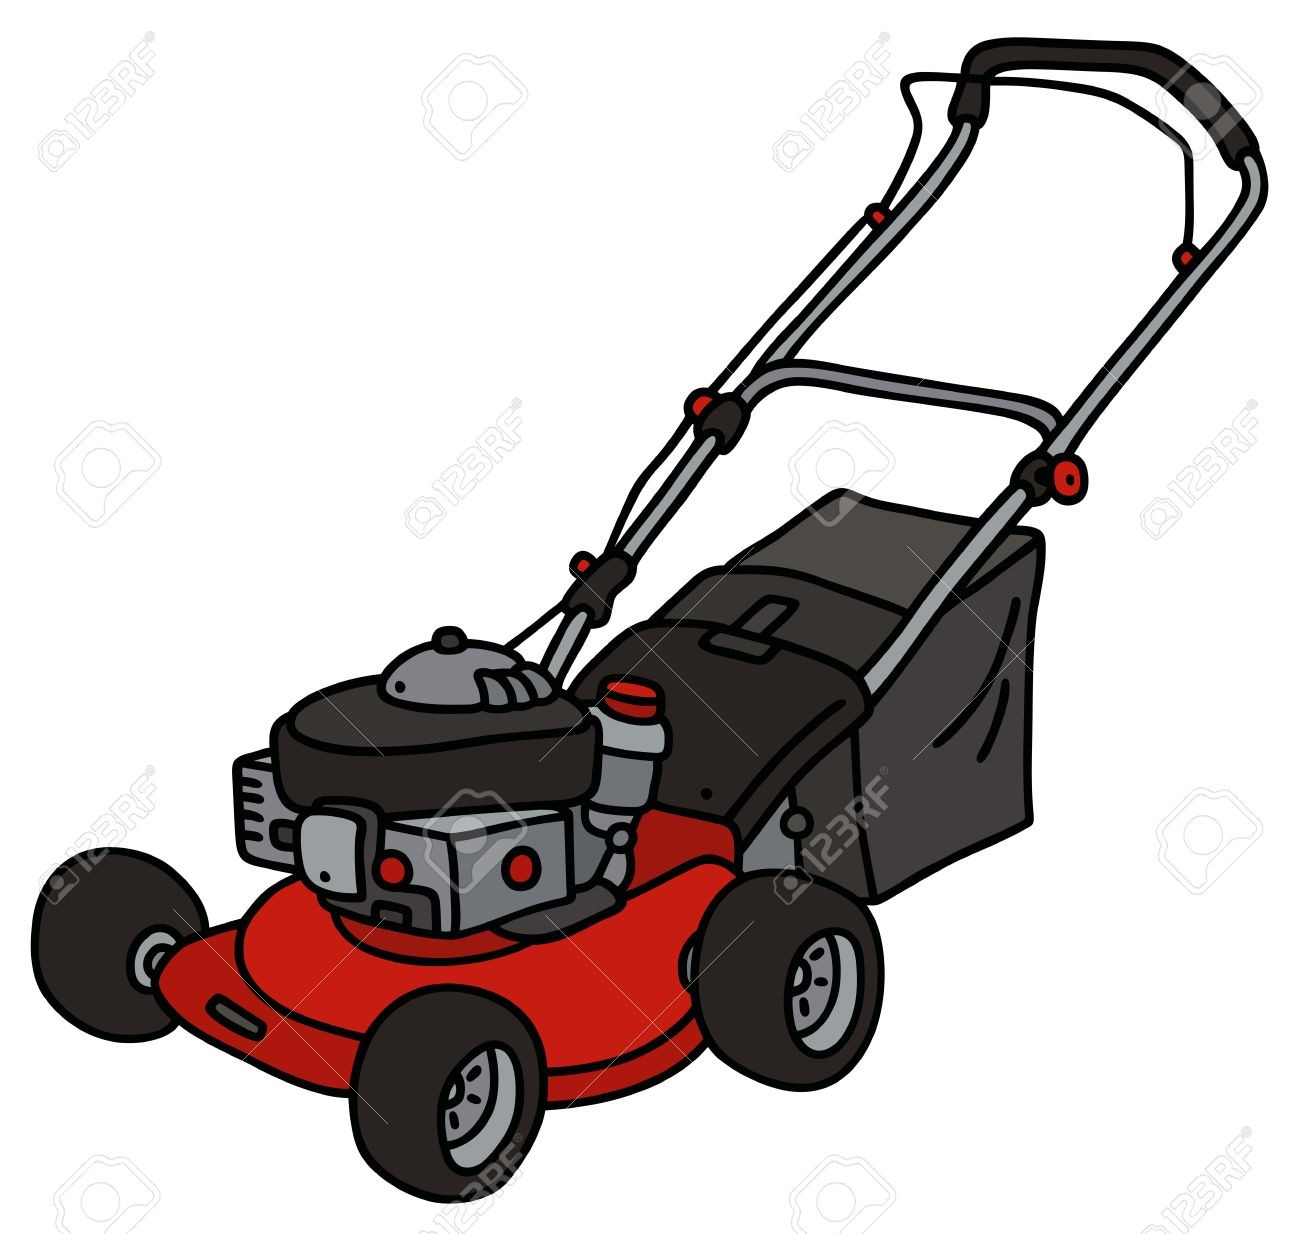 Lawnmower clipart lawn work, Lawnmower lawn work Transparent.